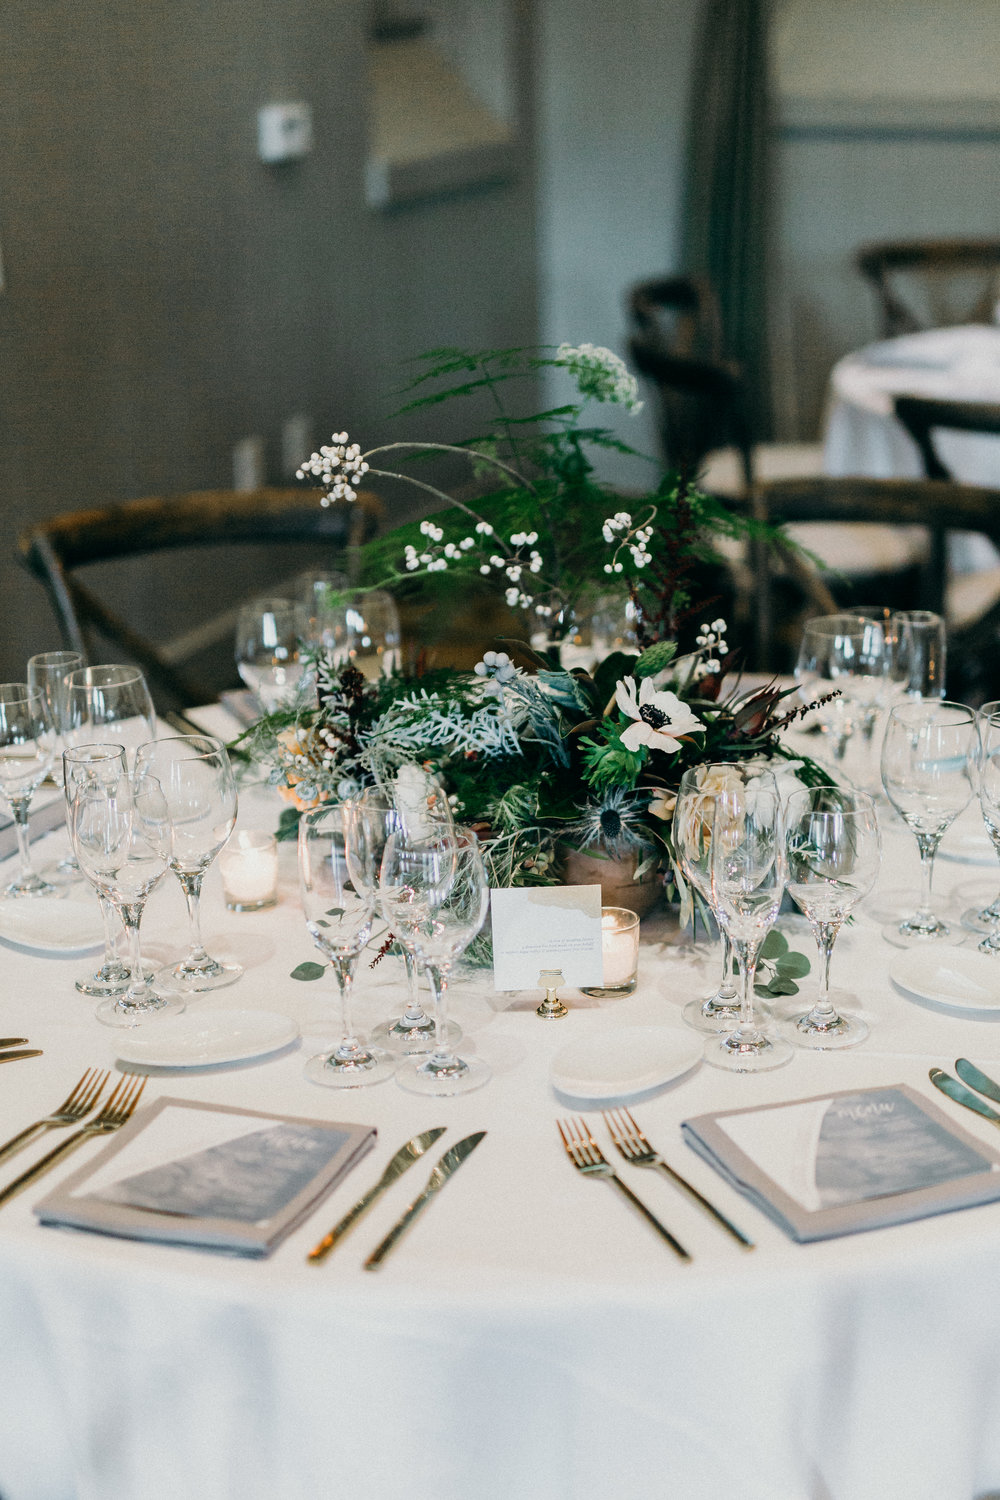 Green, white, and silver centerpiece flowers by Venn Floral with Anemones, Eryngium, and Ferns photographed by Ryan Chard Smith at Cavallo Point.